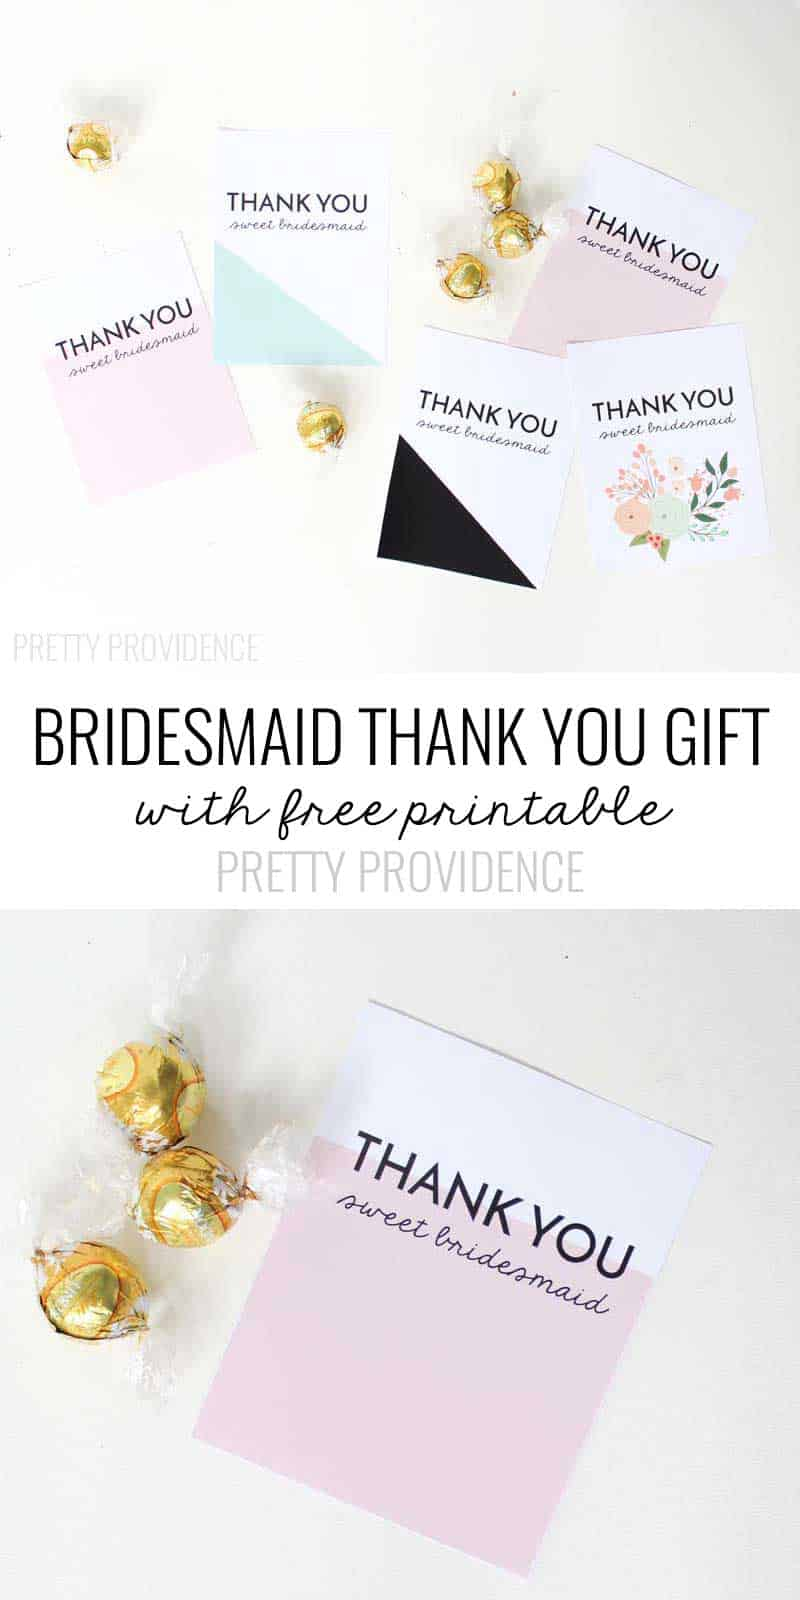 LOVE this bridesmaid thank you gift idea!!! (Free Printable Thank You cards too!) Definitely pinning for later